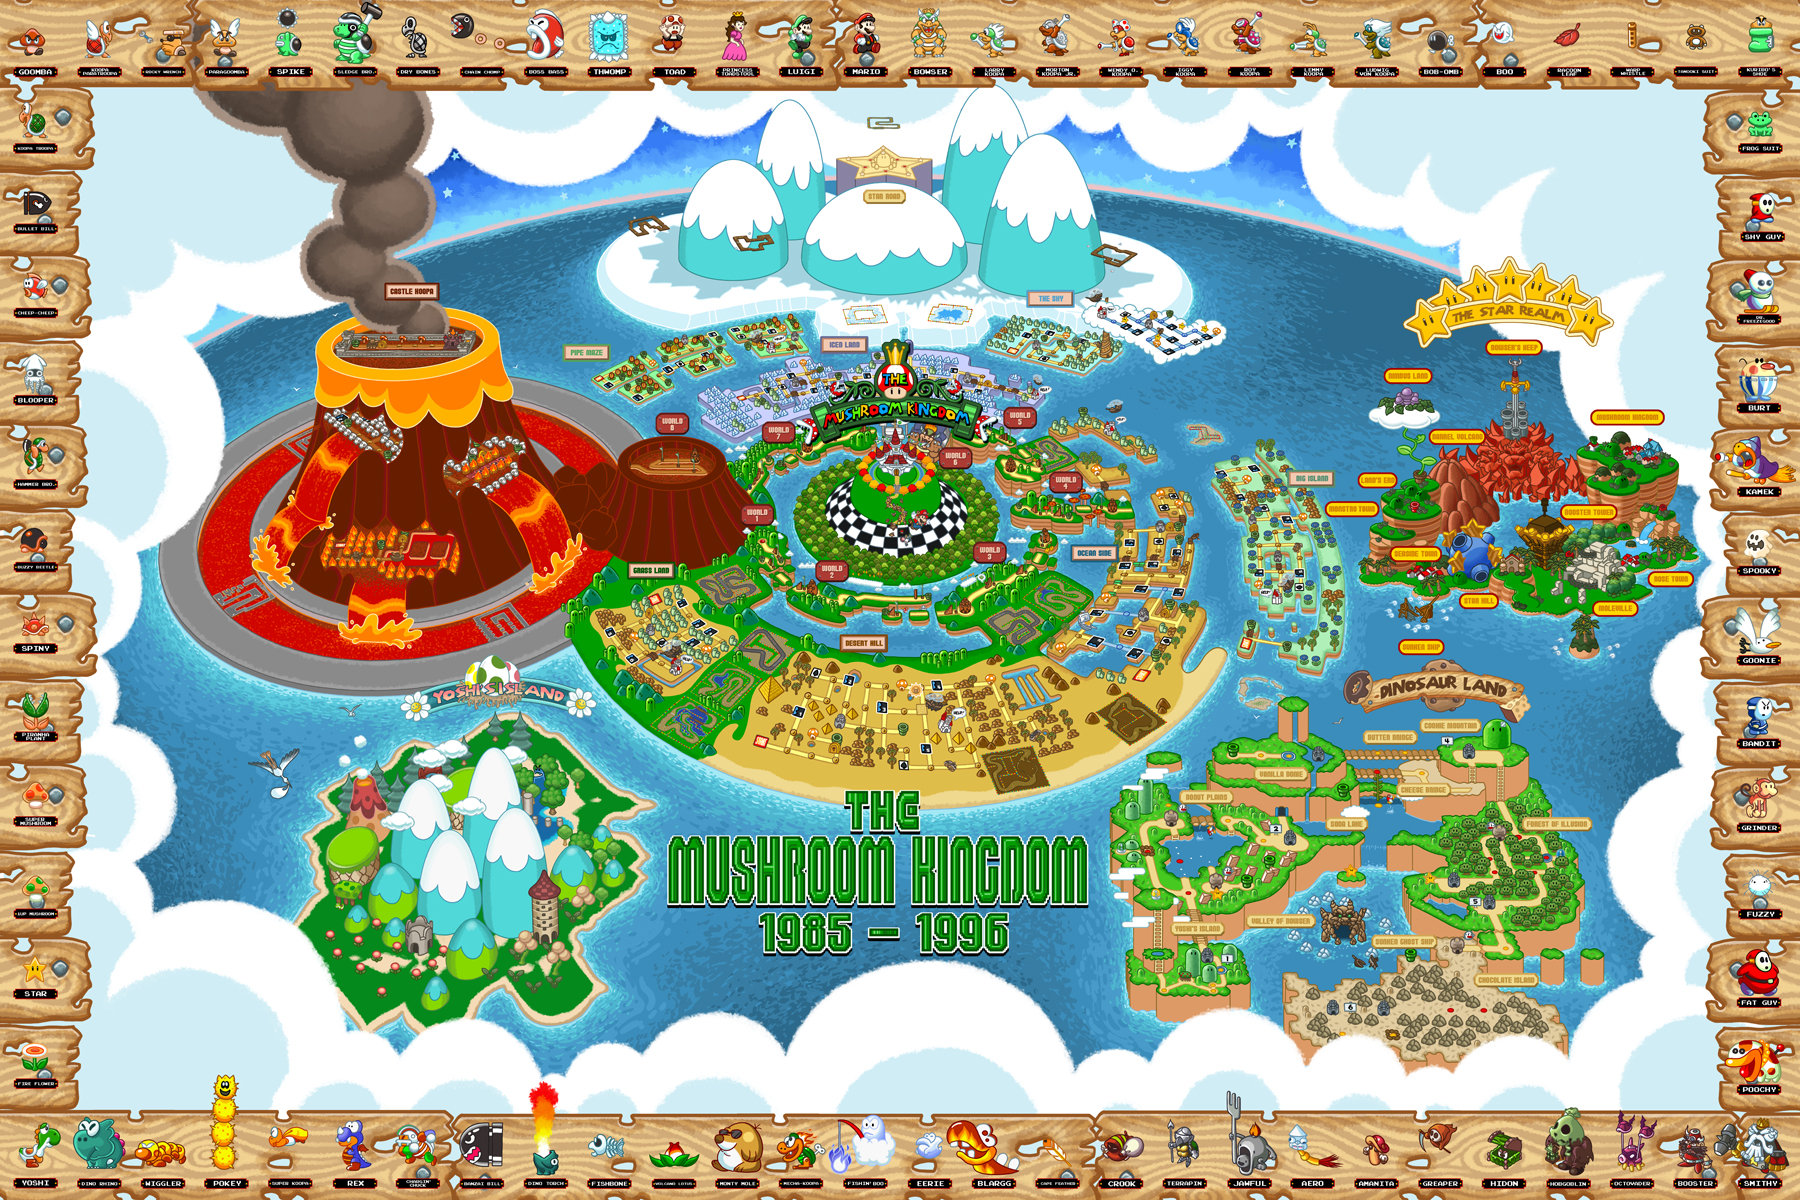 Mushroom kingdom wii wiki fandom powered by wikia caption a fan made map of the mushroom kingdom by bill murdon greater location mushroom world gumiabroncs Image collections